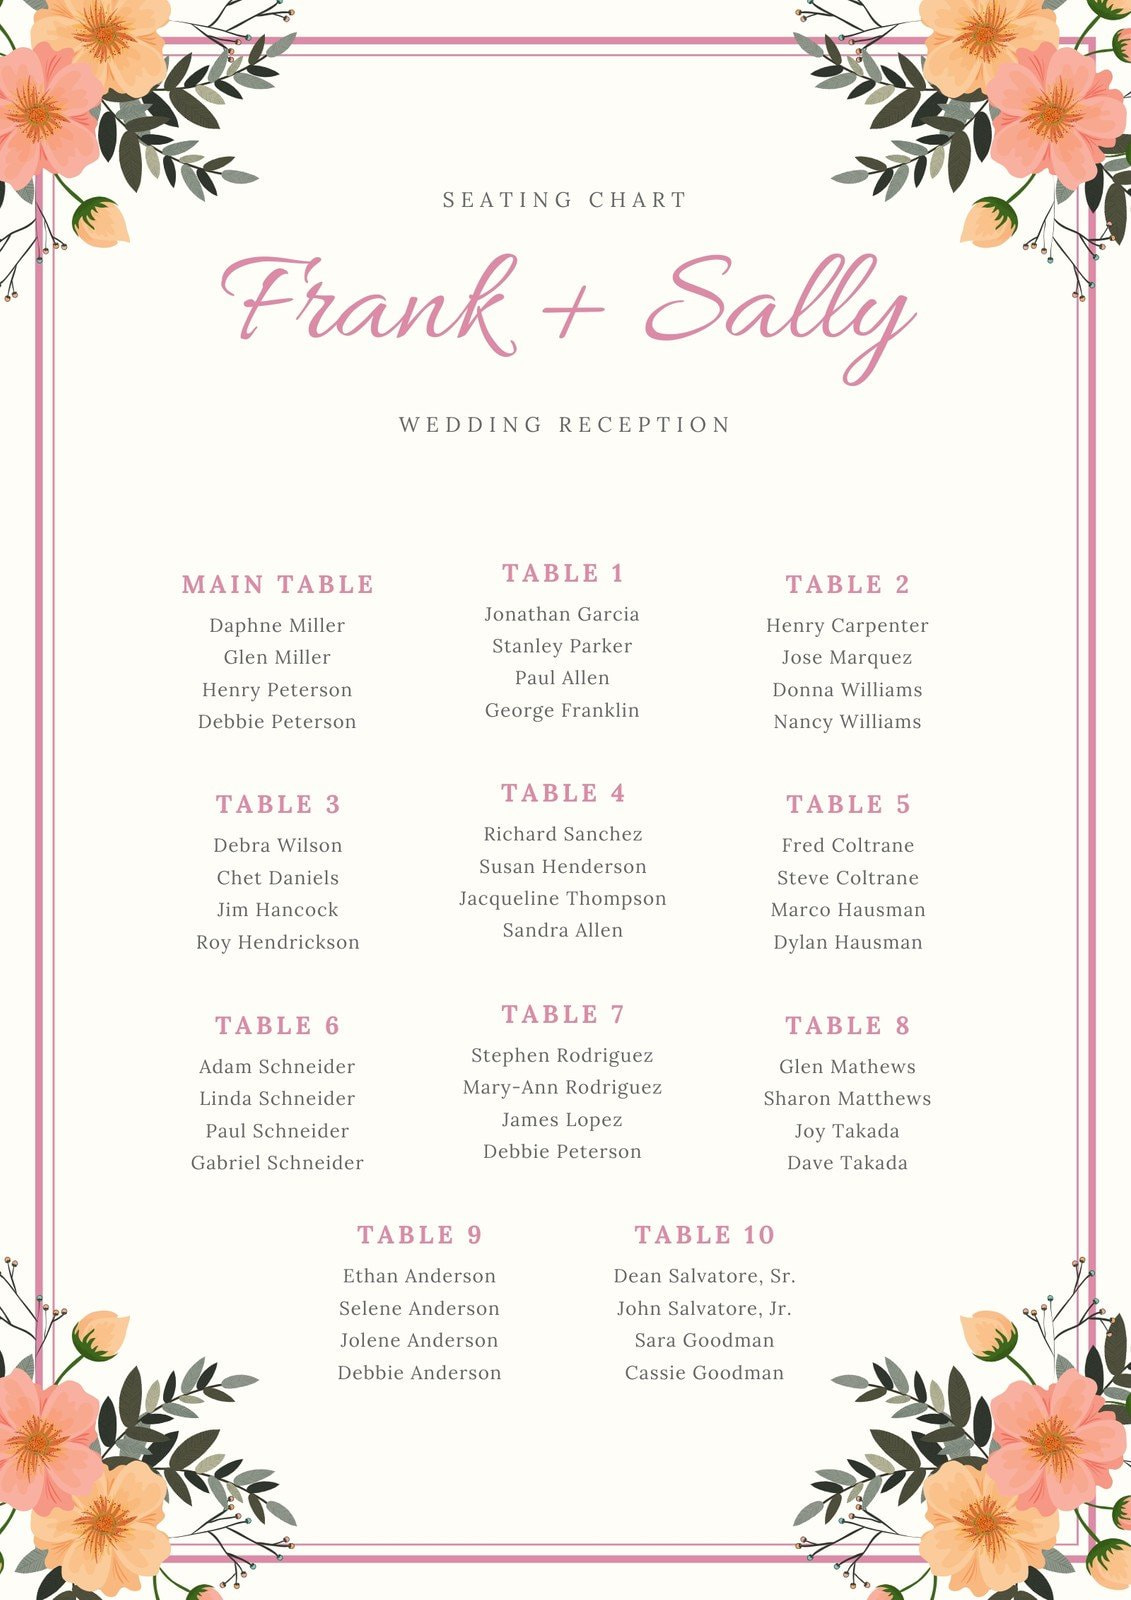 Pink and Cream Floral Wedding Seating Chart